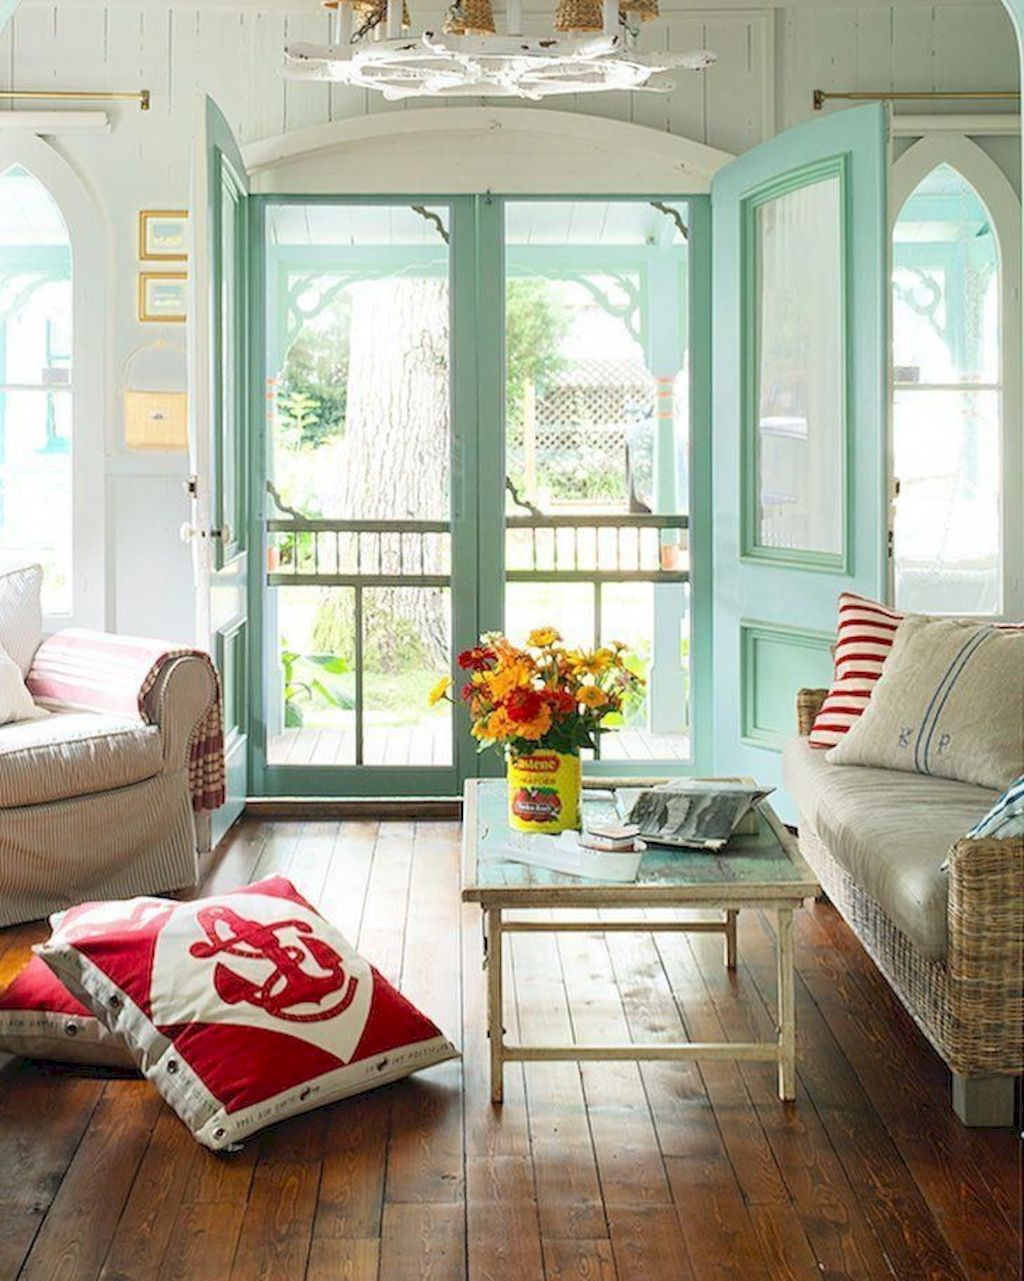 Shining Coastal Home Living Room with Relaxing and Fresh Color Scheme images